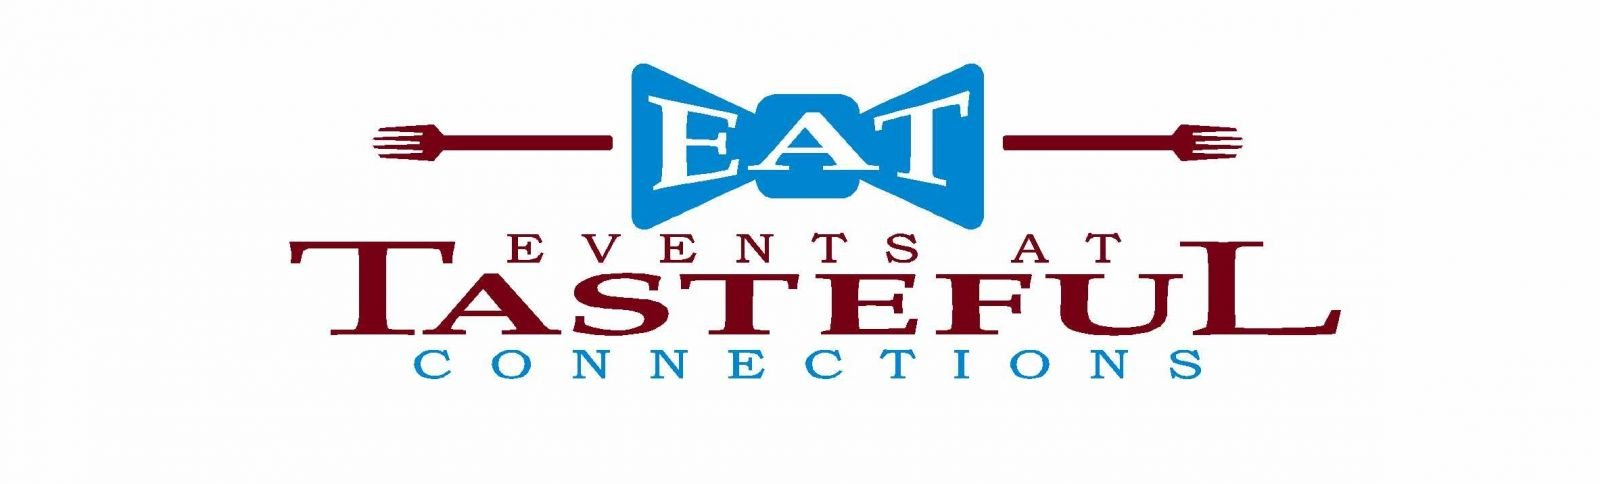 Eat at Tasteful Connections